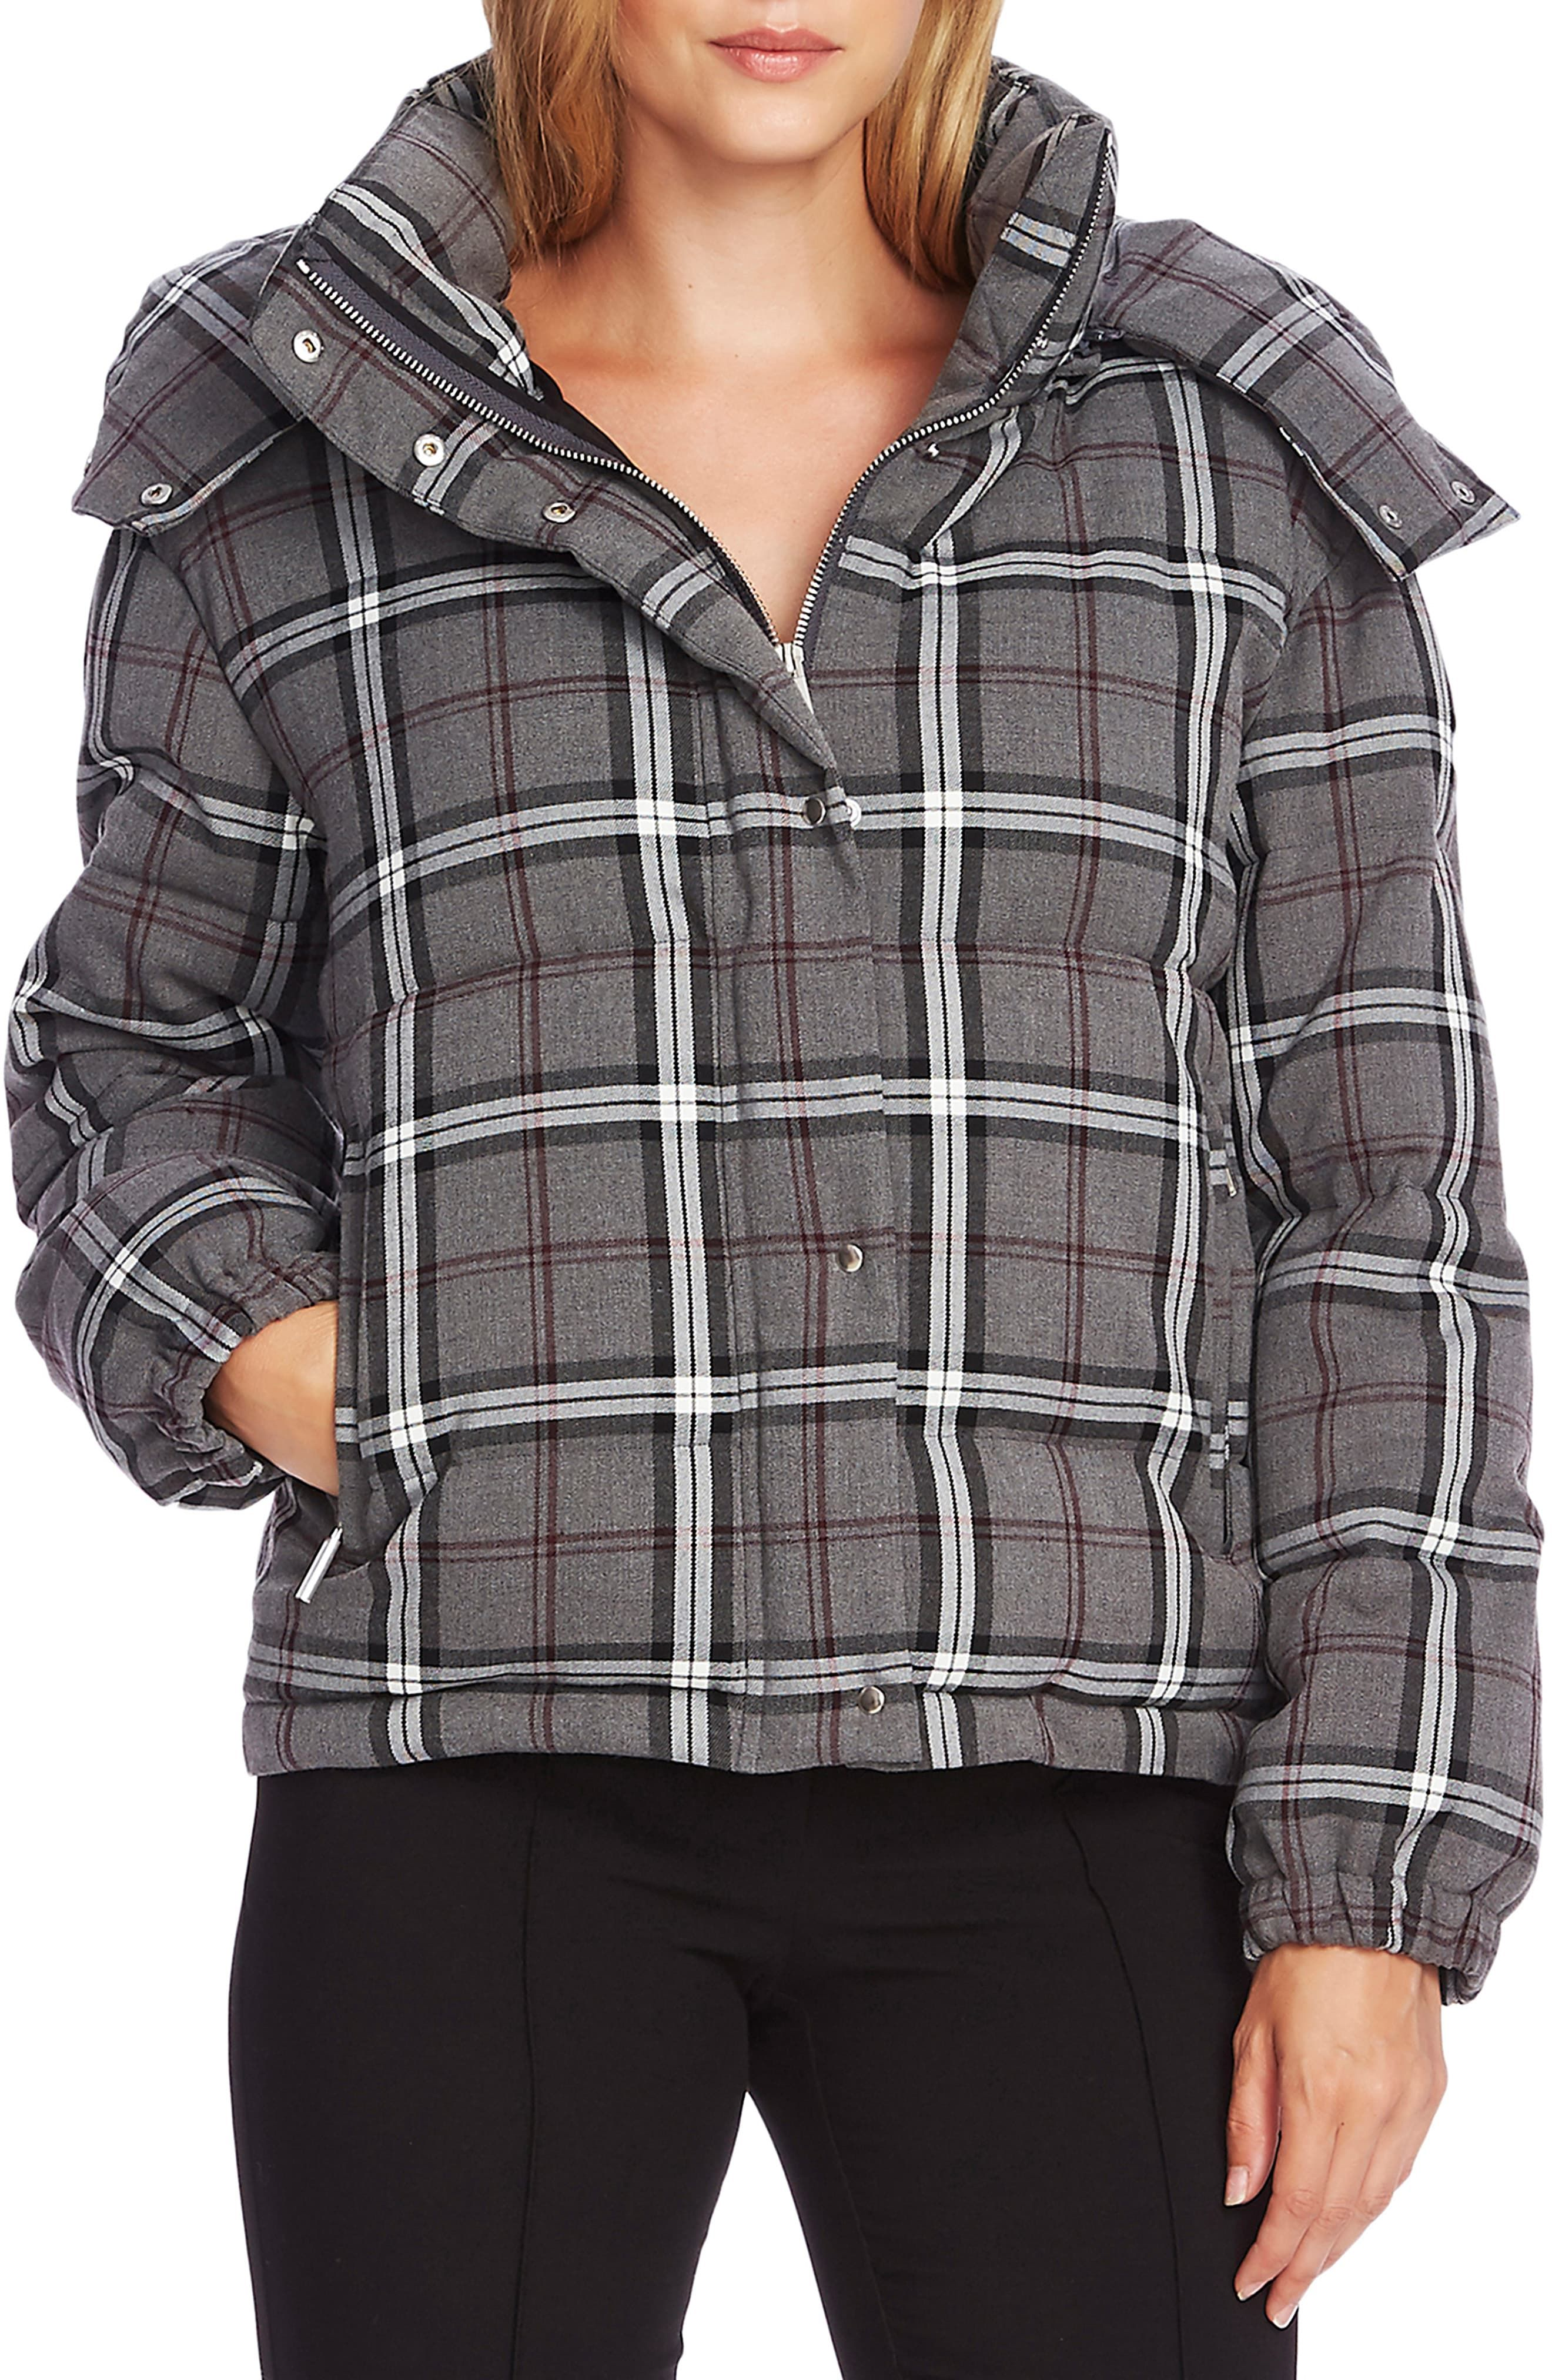 Vince Camuto Plaid Hooded Puffer Jacket Puffer Jackets Puffer Jacket Style Womens Fashion Jackets [ 4048 x 2640 Pixel ]